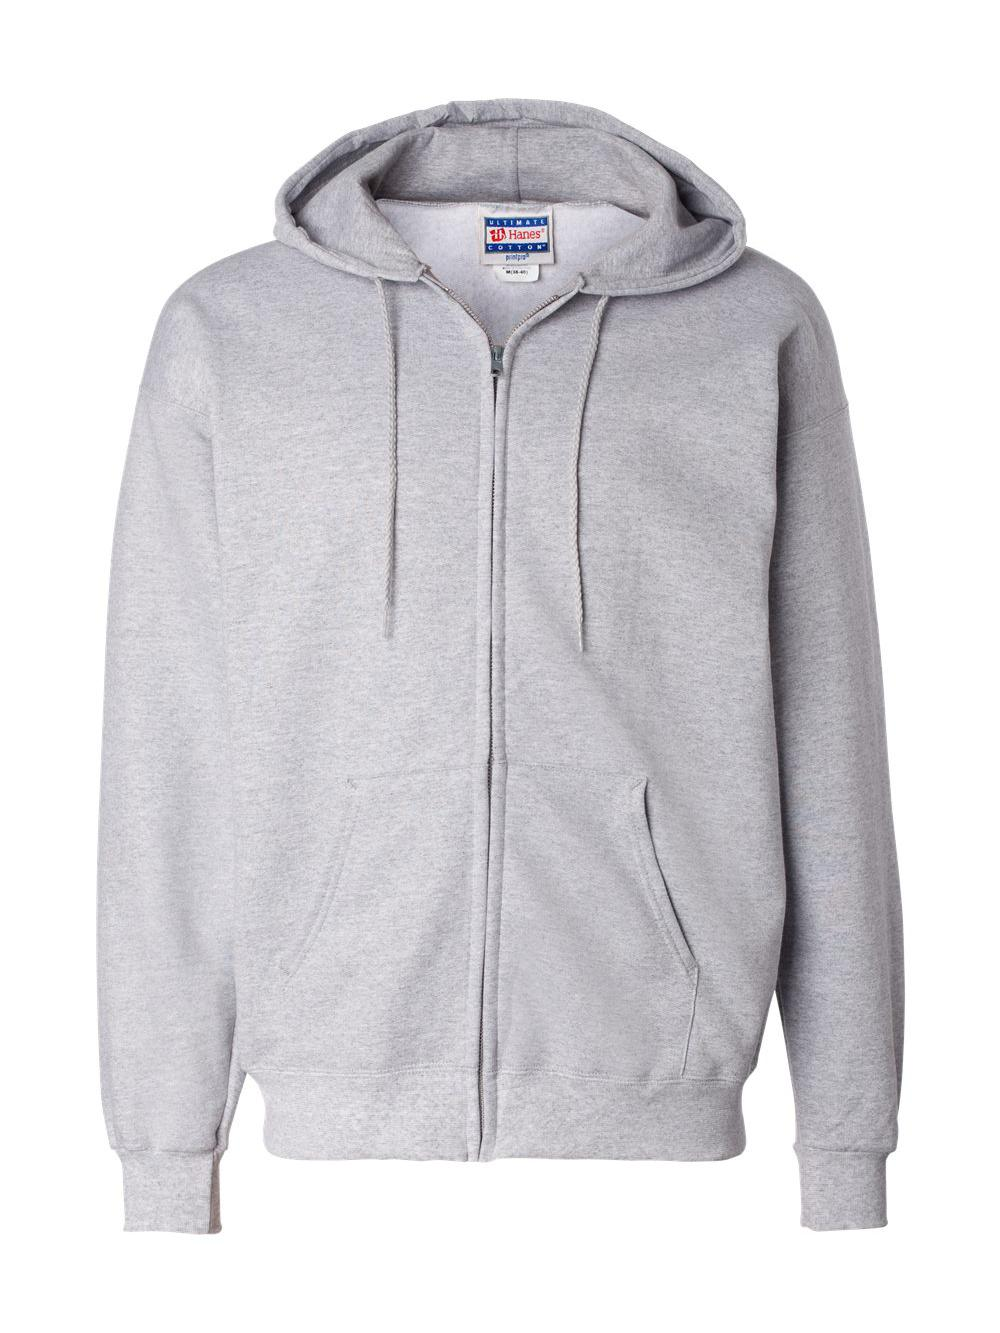 Hanes-Ultimate-Cotton-Full-Zip-Hooded-Sweatshirt-F280 thumbnail 12